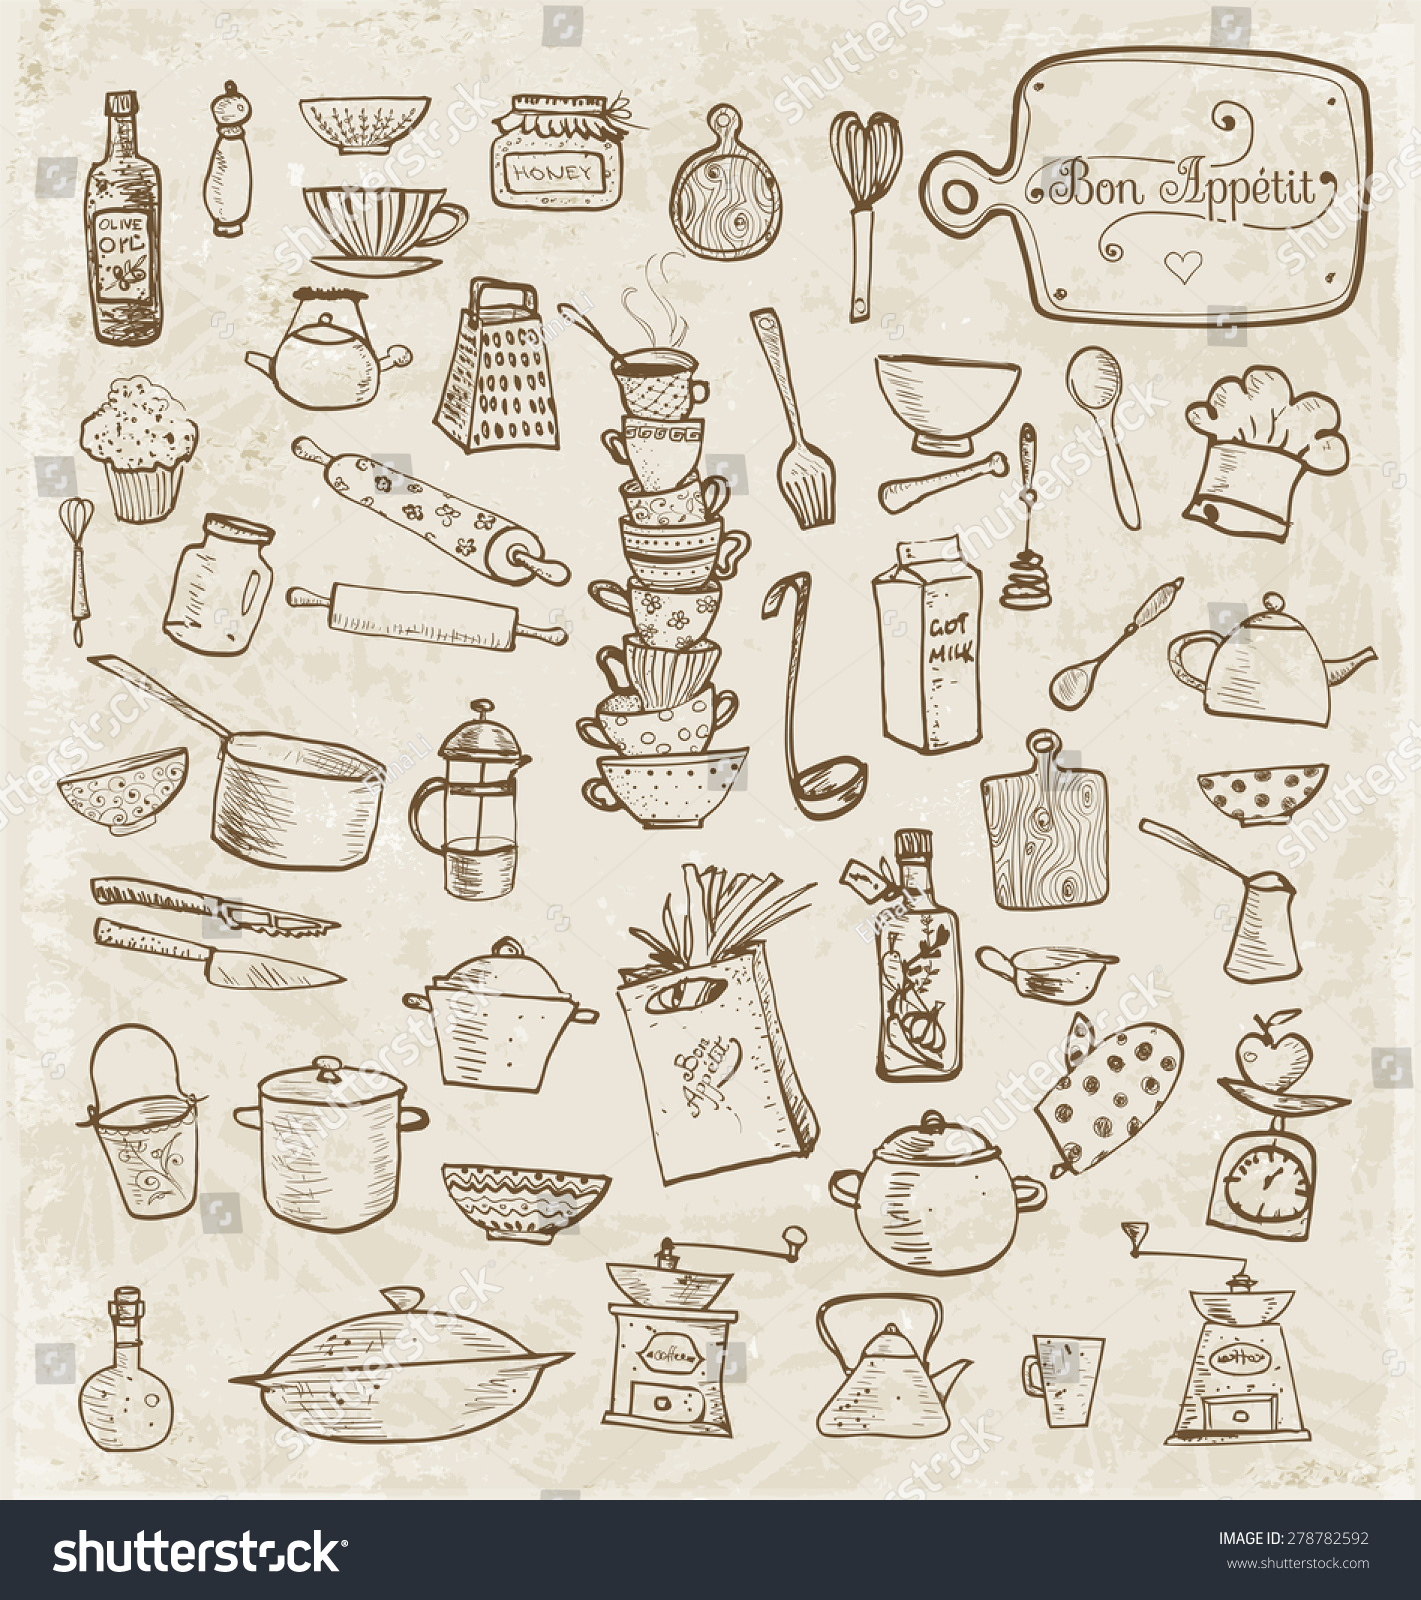 Big Set Vintage Kitchen Utensils Handdrawn Stock Vector